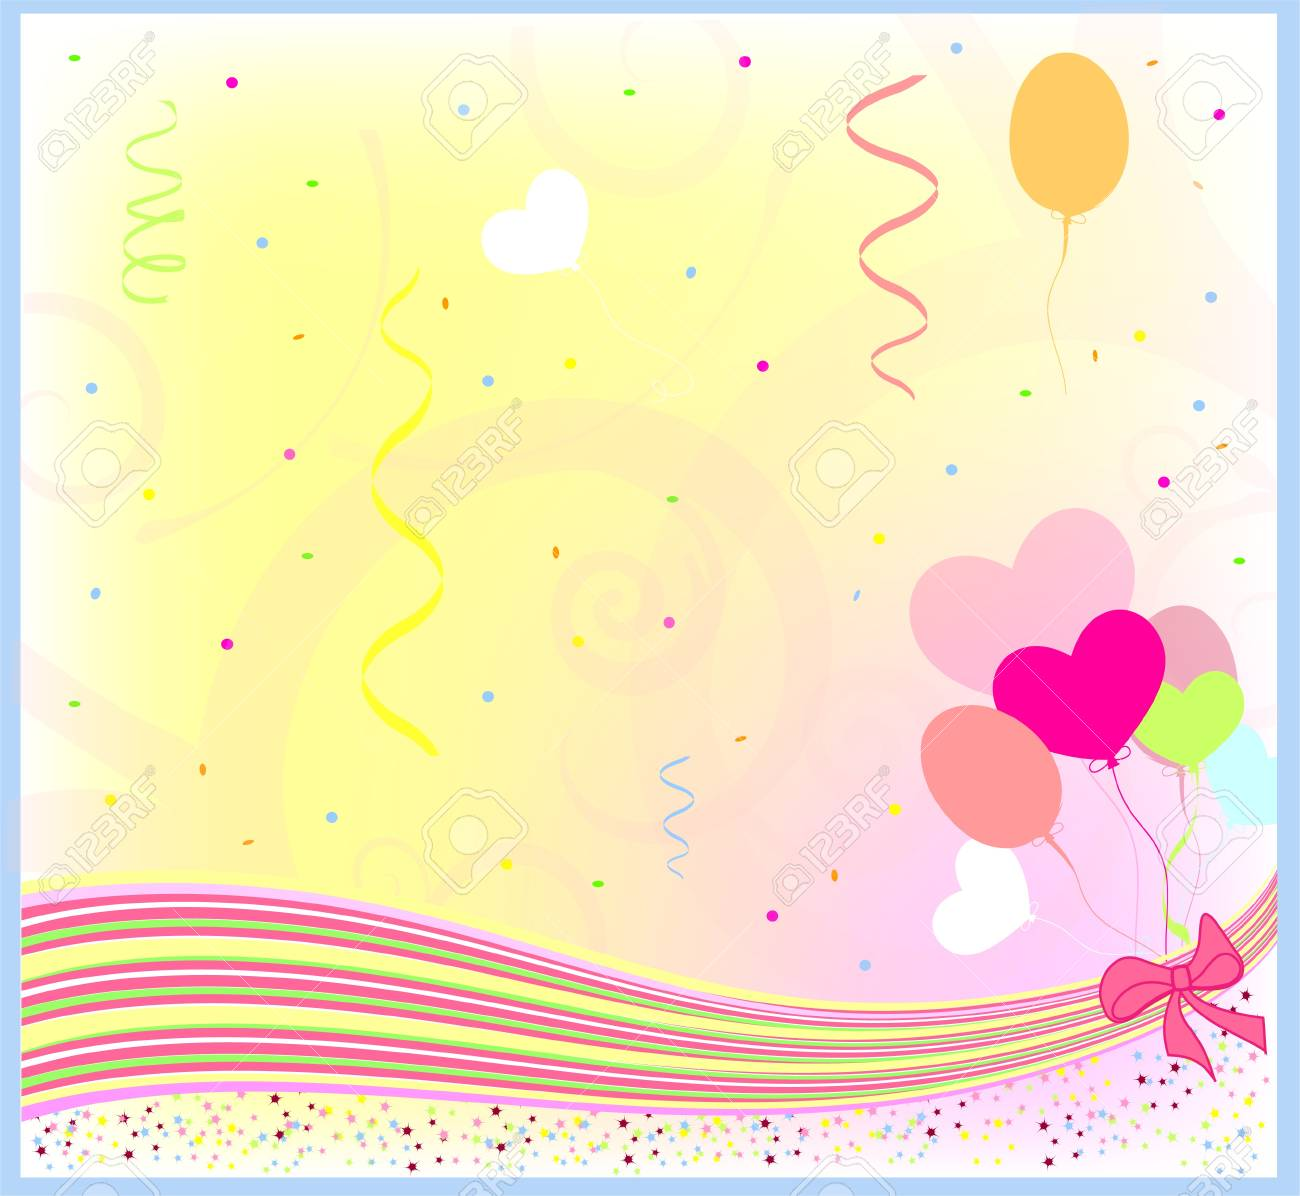 Happy Birthday Greeting Background Royalty Free Cliparts Vectors